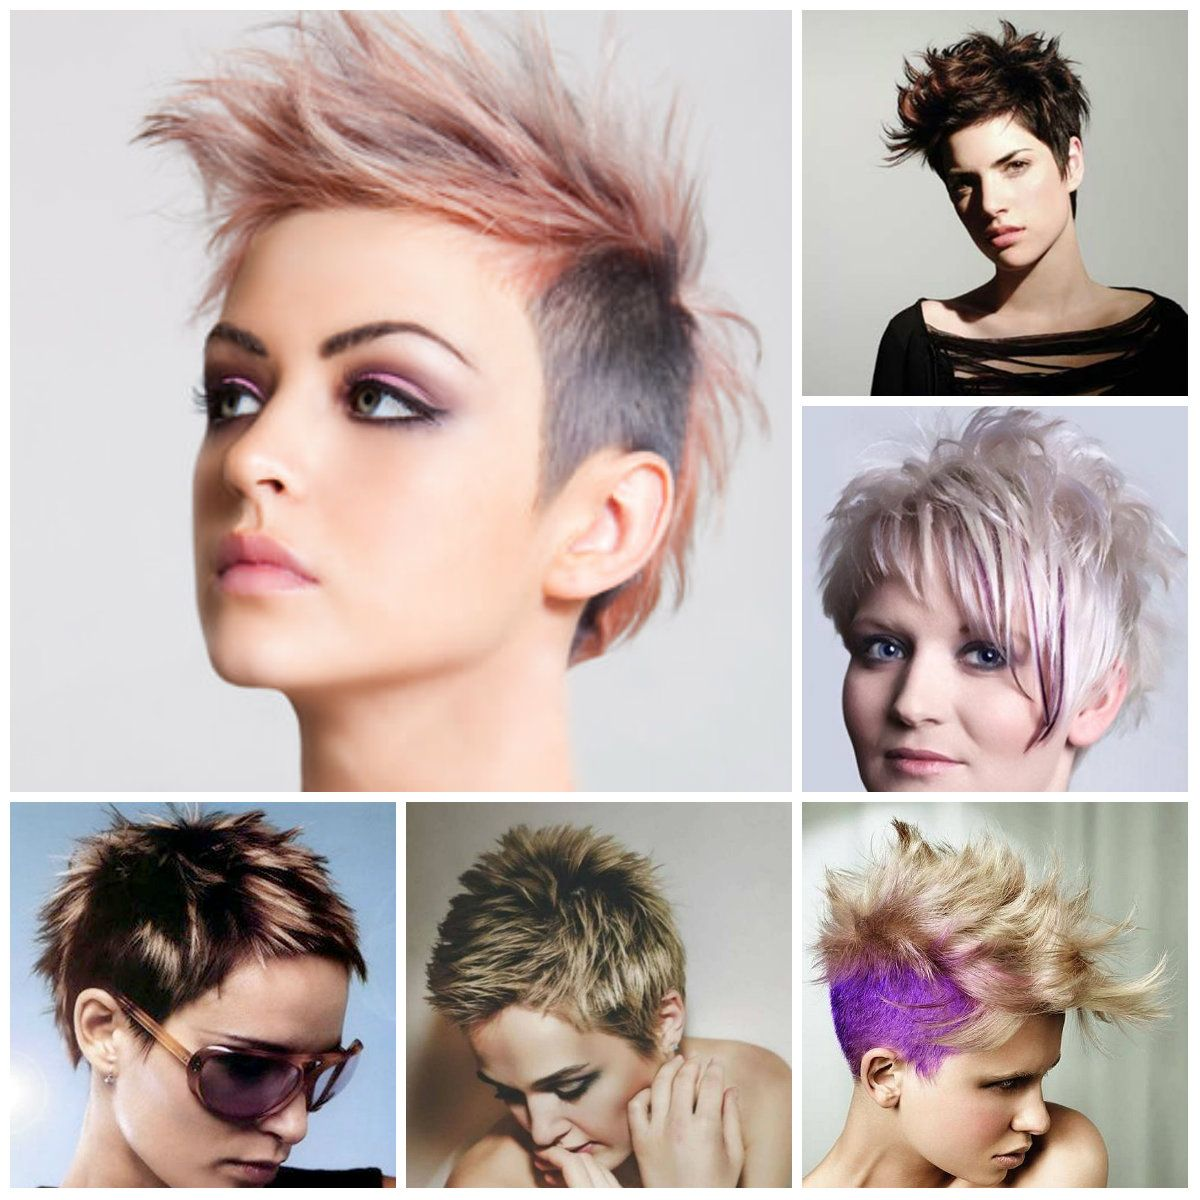 Short hairstyles trendy short hairstyles for women - 2017 Trendy Short Spiky Hairstyles For Women